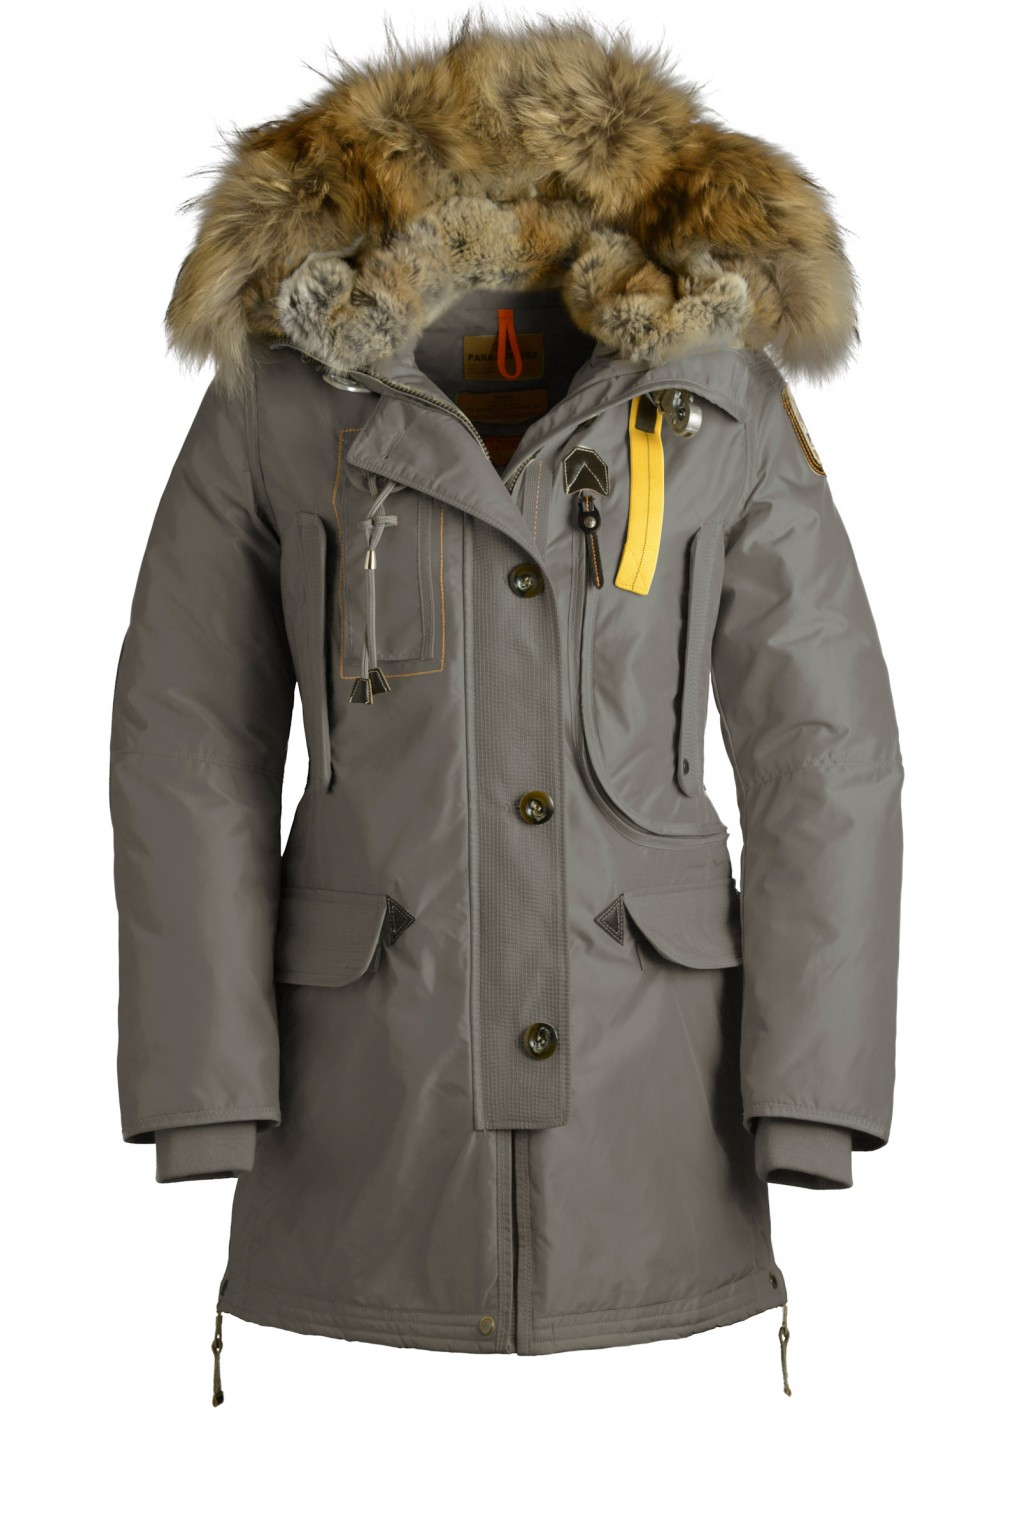 parajumpers KODIAK woman outerwear Sage